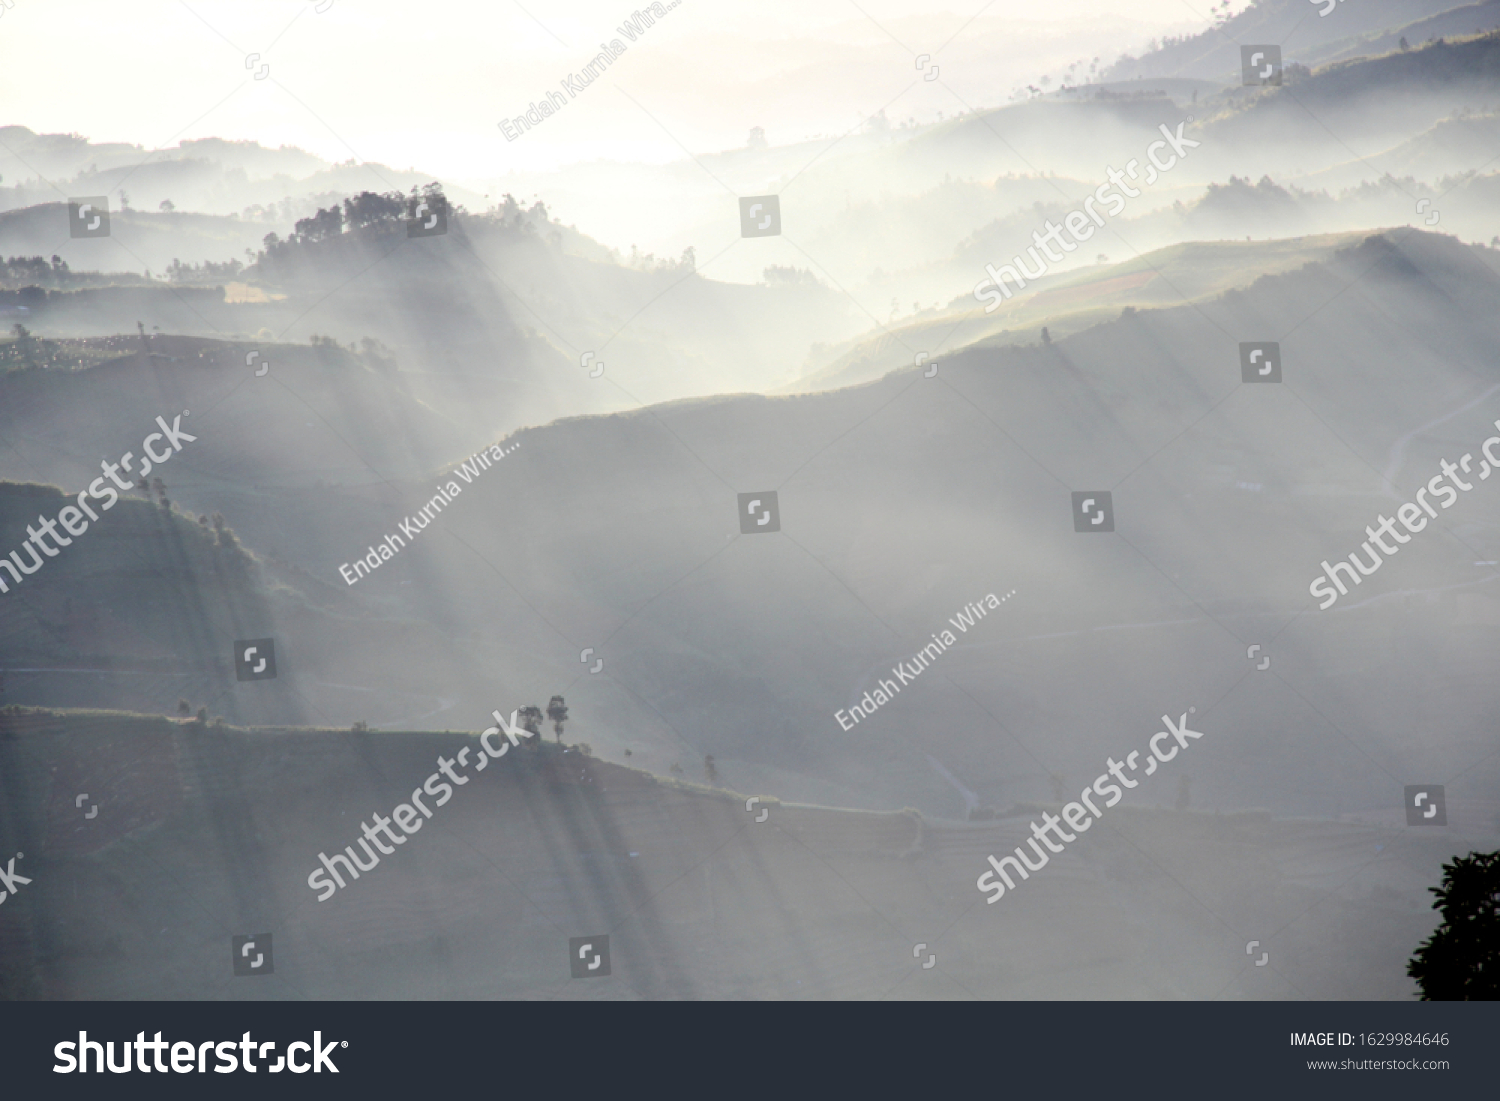 stock-photo-a-blur-foggy-hill-at-dieng-p